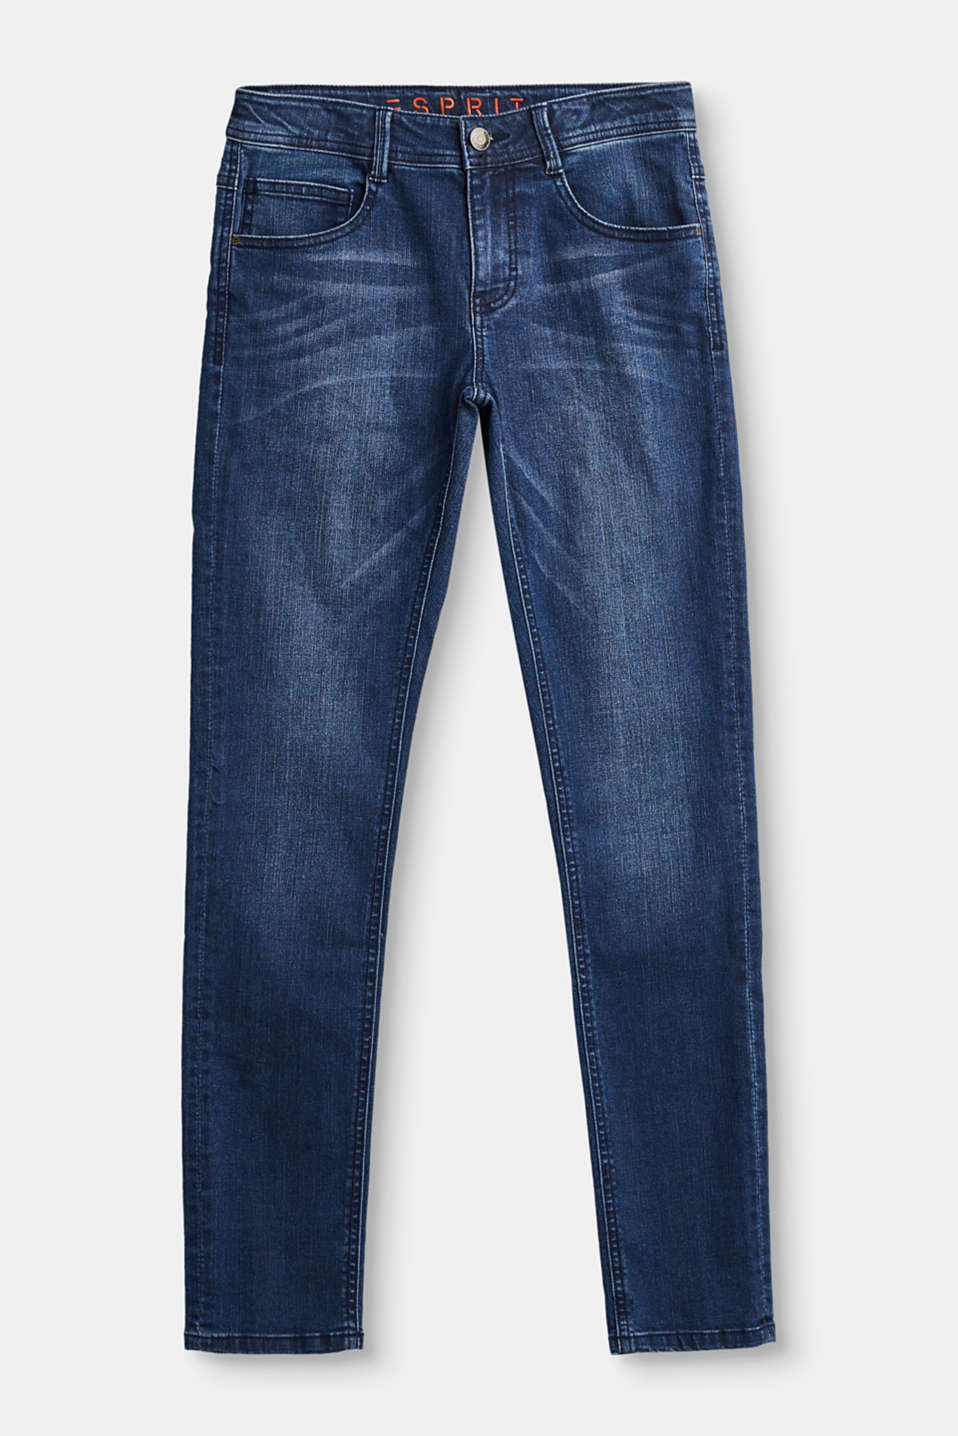 Esprit - Stretch jeans with a deep crotch